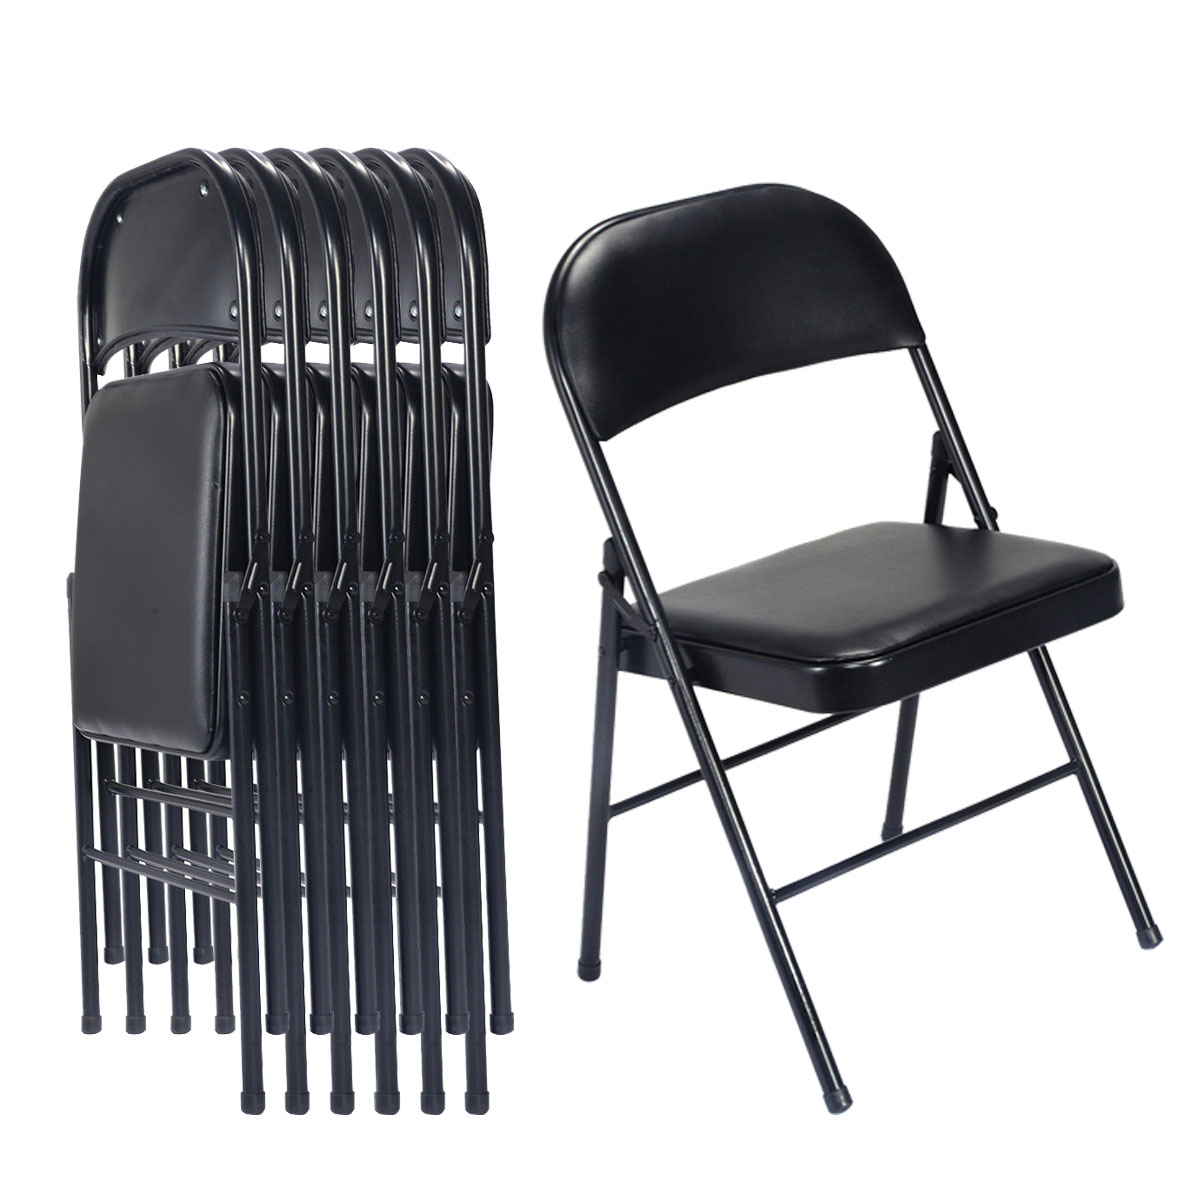 Outstanding Details About 6 Pcs National Public Seating Steel Folding Chair W Fabric Padded Seat And Back Theyellowbook Wood Chair Design Ideas Theyellowbookinfo